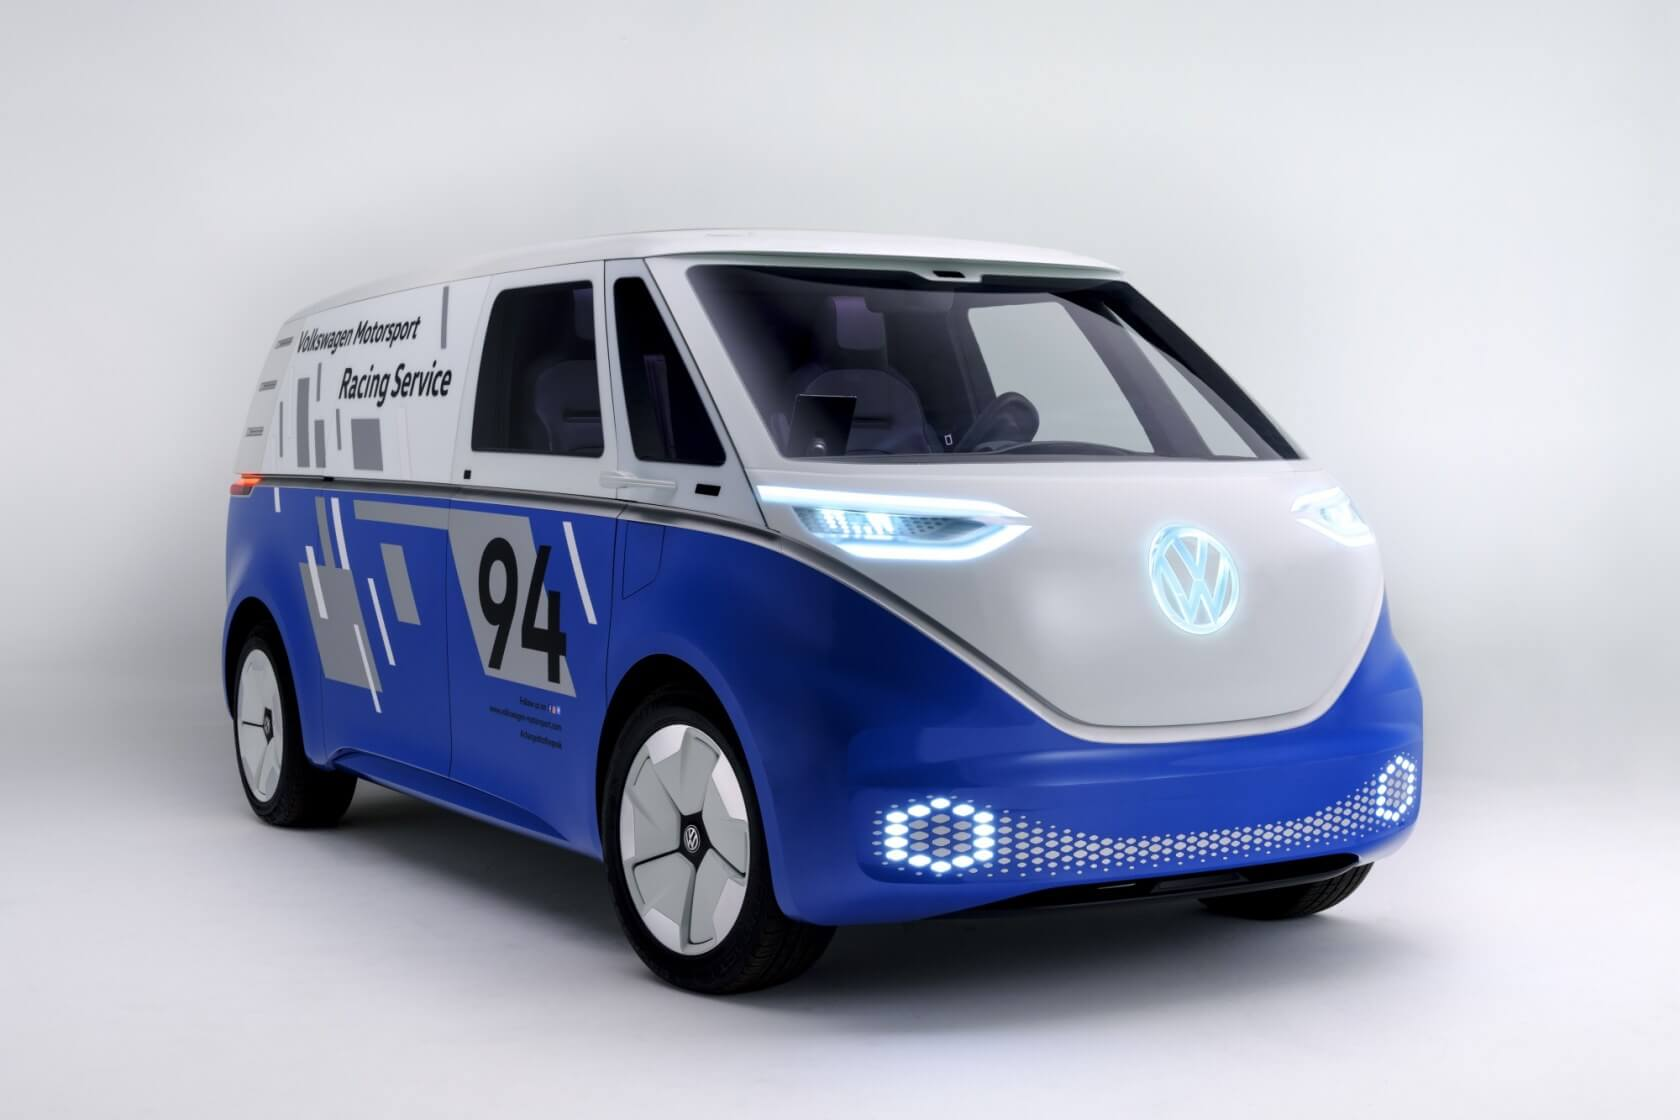 Volkswagen unveils concept electric delivery vehicles: the 'Buzz Cargo' van and the 'Cargo e-Bike'